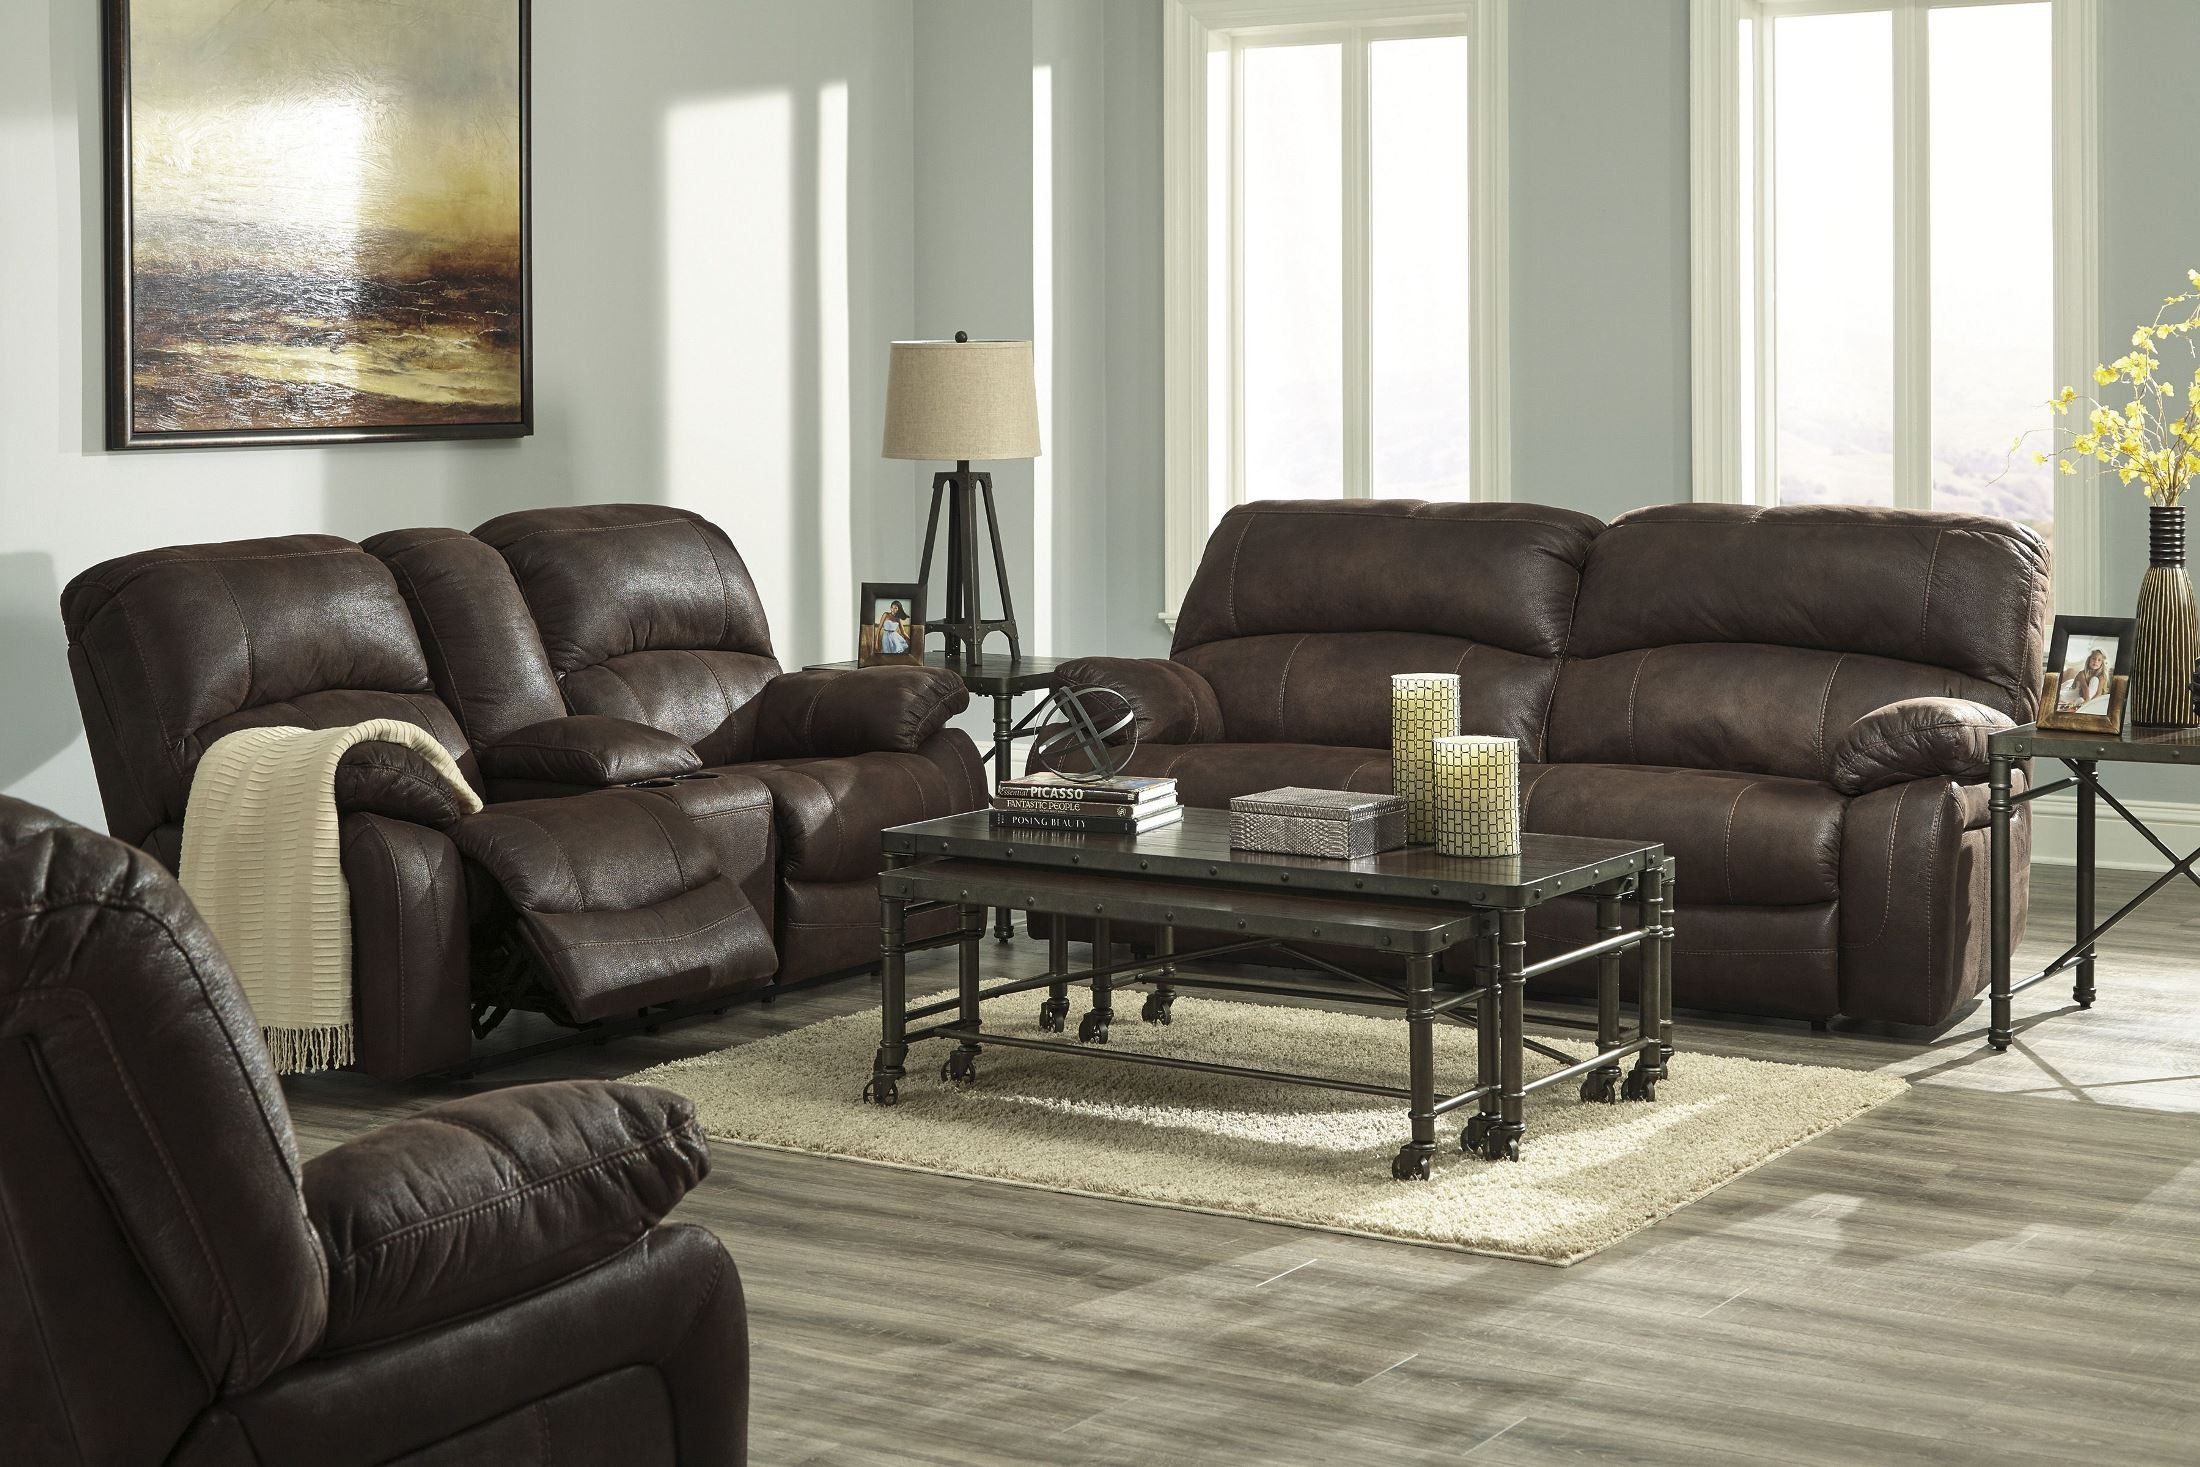 Zavier Truffle 2 Seat Reclining Sofa From Ashley 4290181